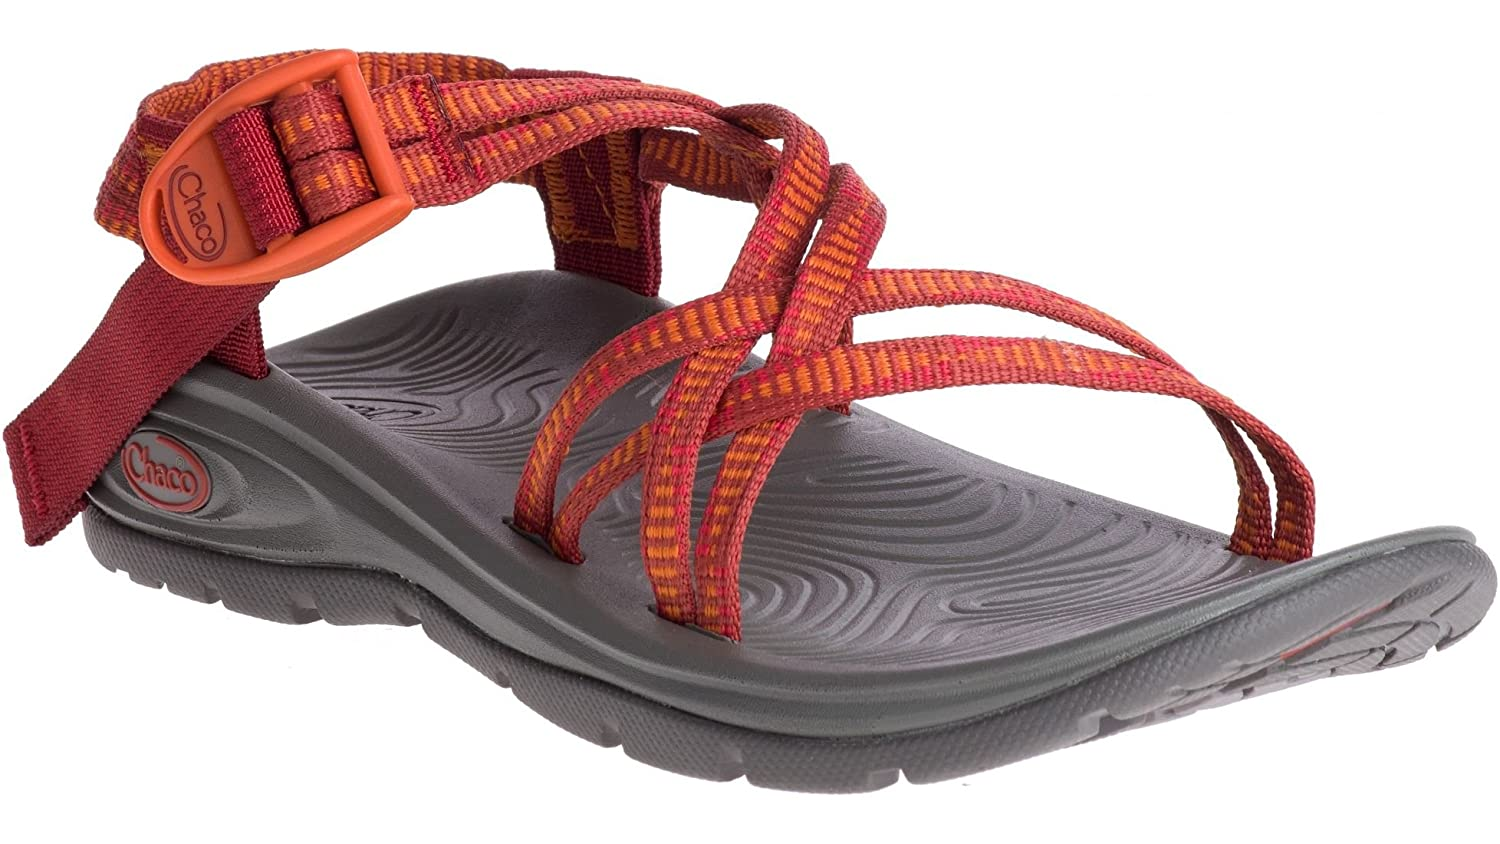 Chaco Women's Zvolv X Athletic Sandal B071K7SVDW 7 B(M) US|Grouped Poppy